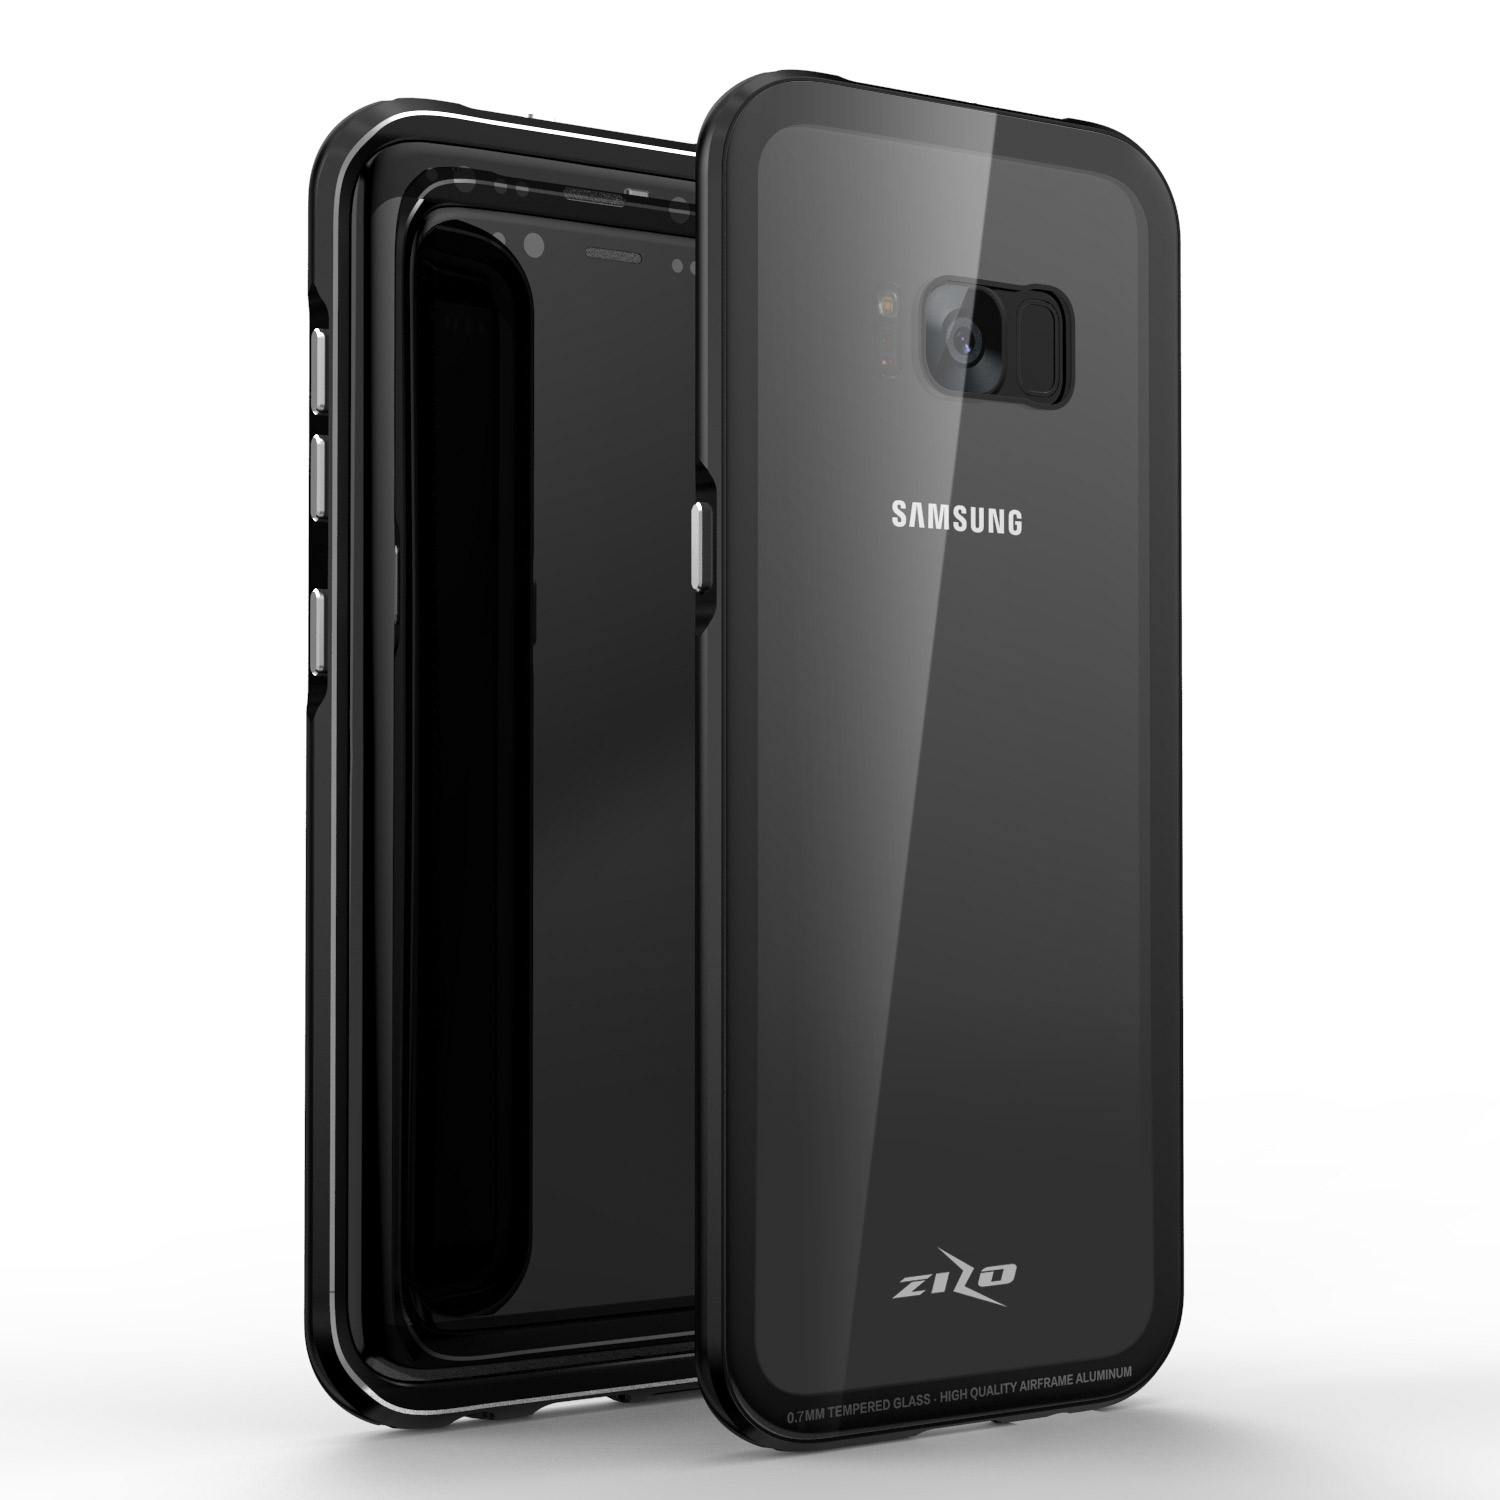 competitive price 52430 e21a6 Details about Samsung Galaxy Note 8 / S8 / S8 Plus Case, Zizo ATOM Series  w/ Screen Protector